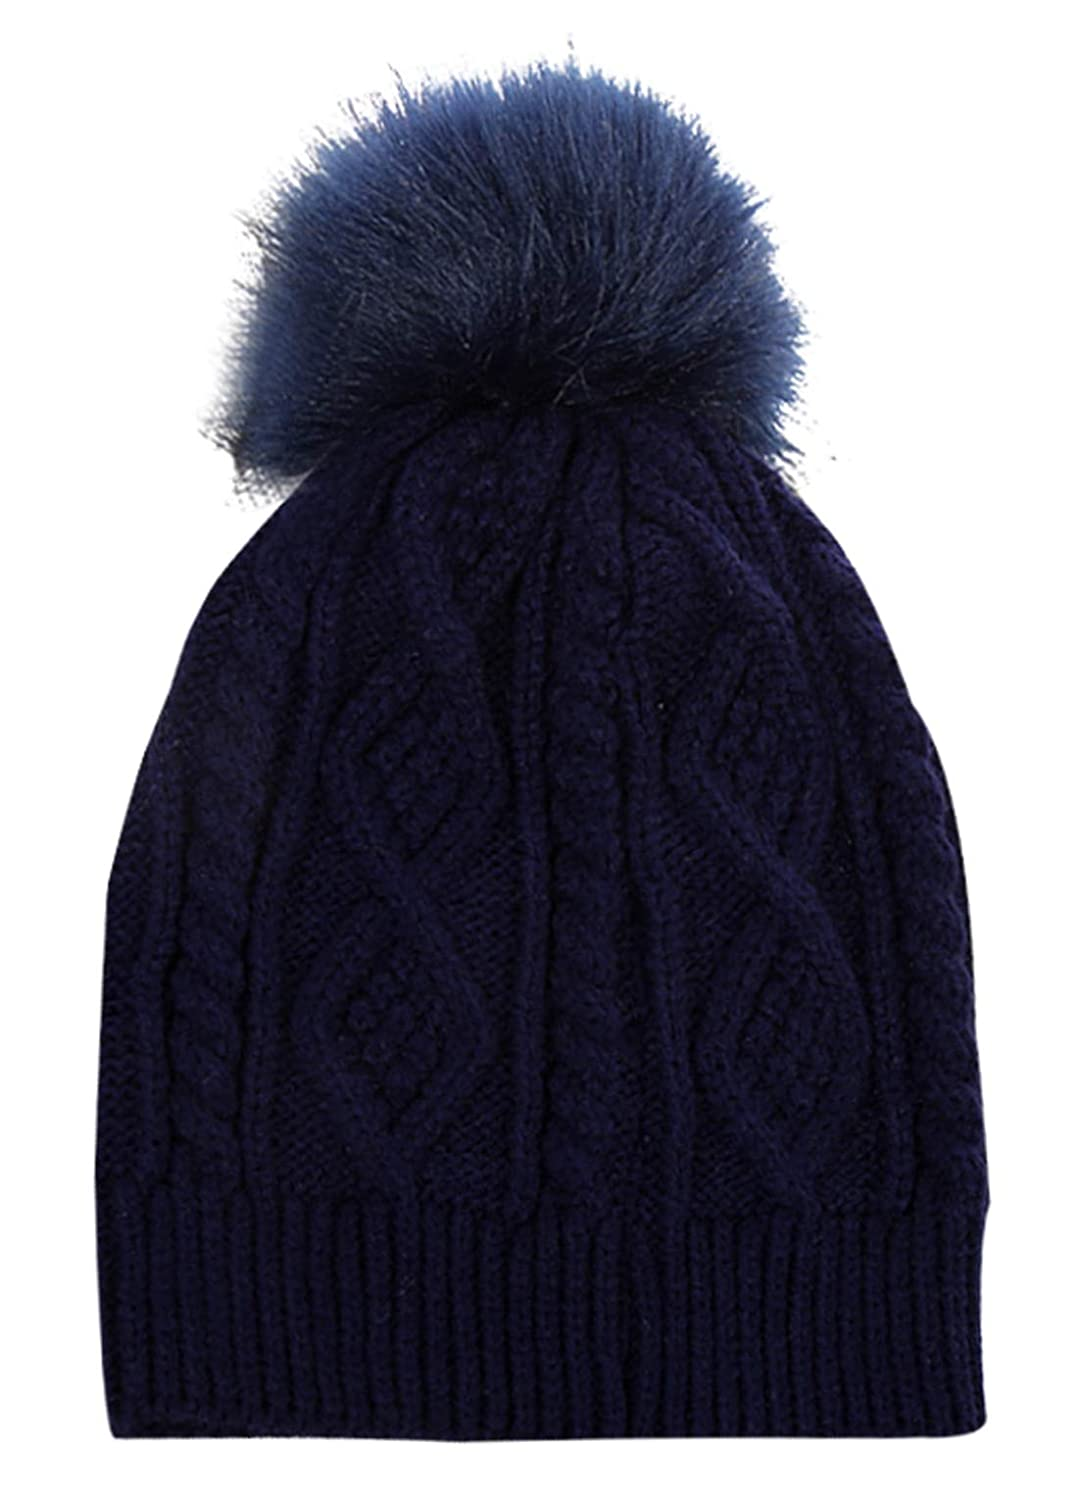 Amazon.com  FEOYA Women Winter Hats with Pom Pom - Soft Warm Skull Cap  Multicolor Stretched Knitted Hat Brown  Clothing 9698a137acee